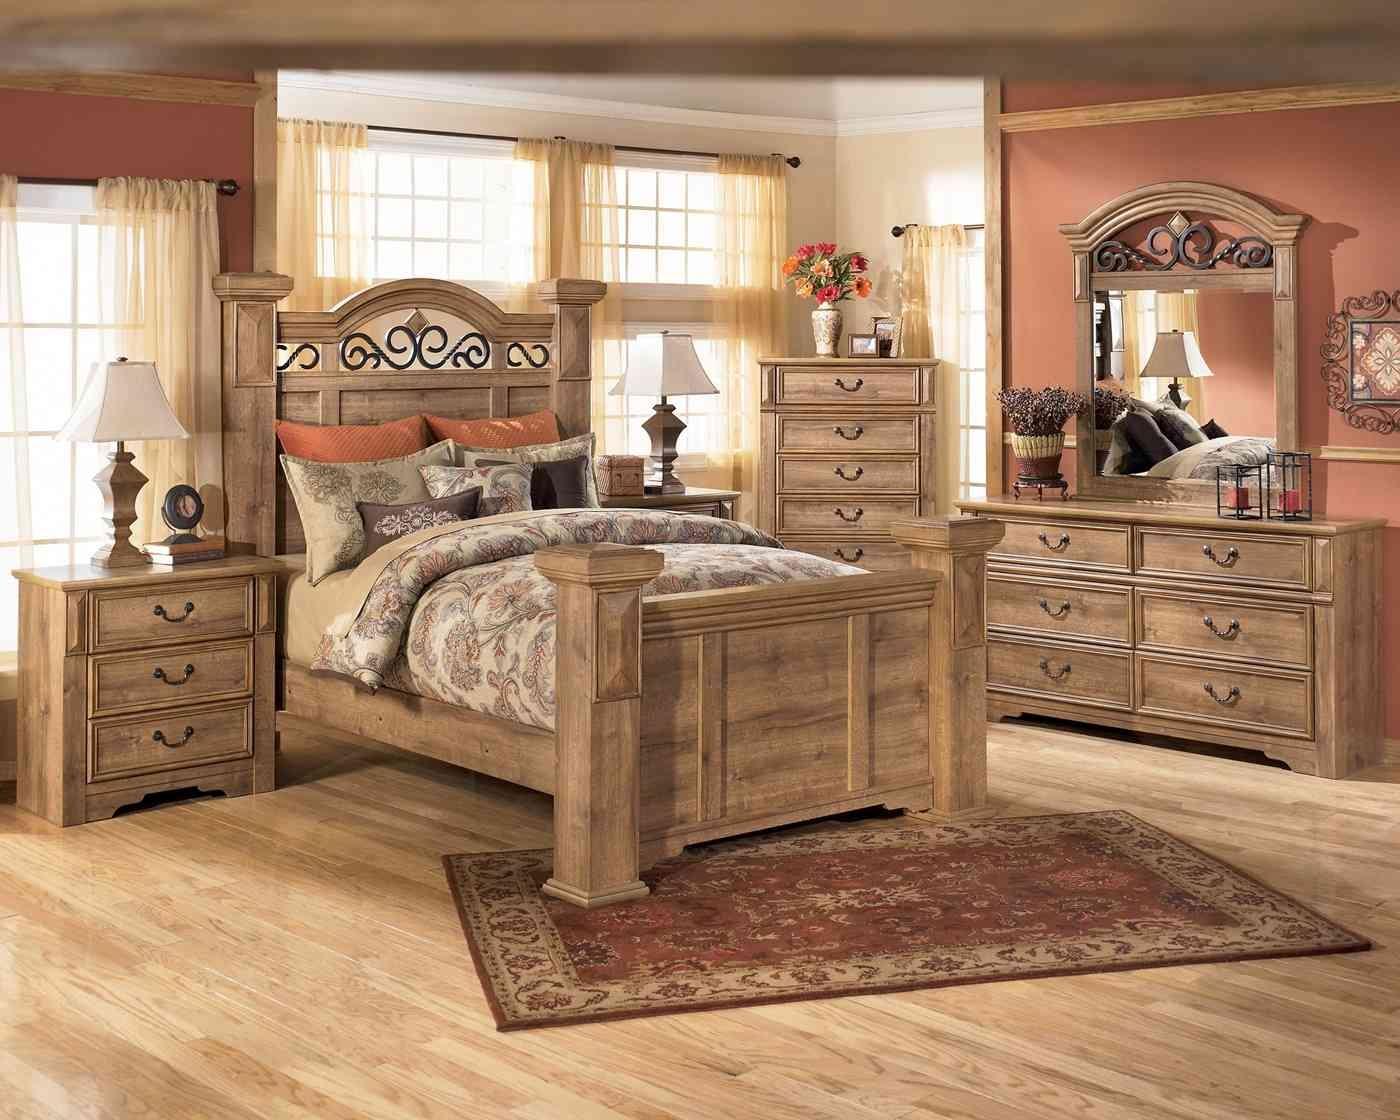 Image of: Great Country Bed Sets